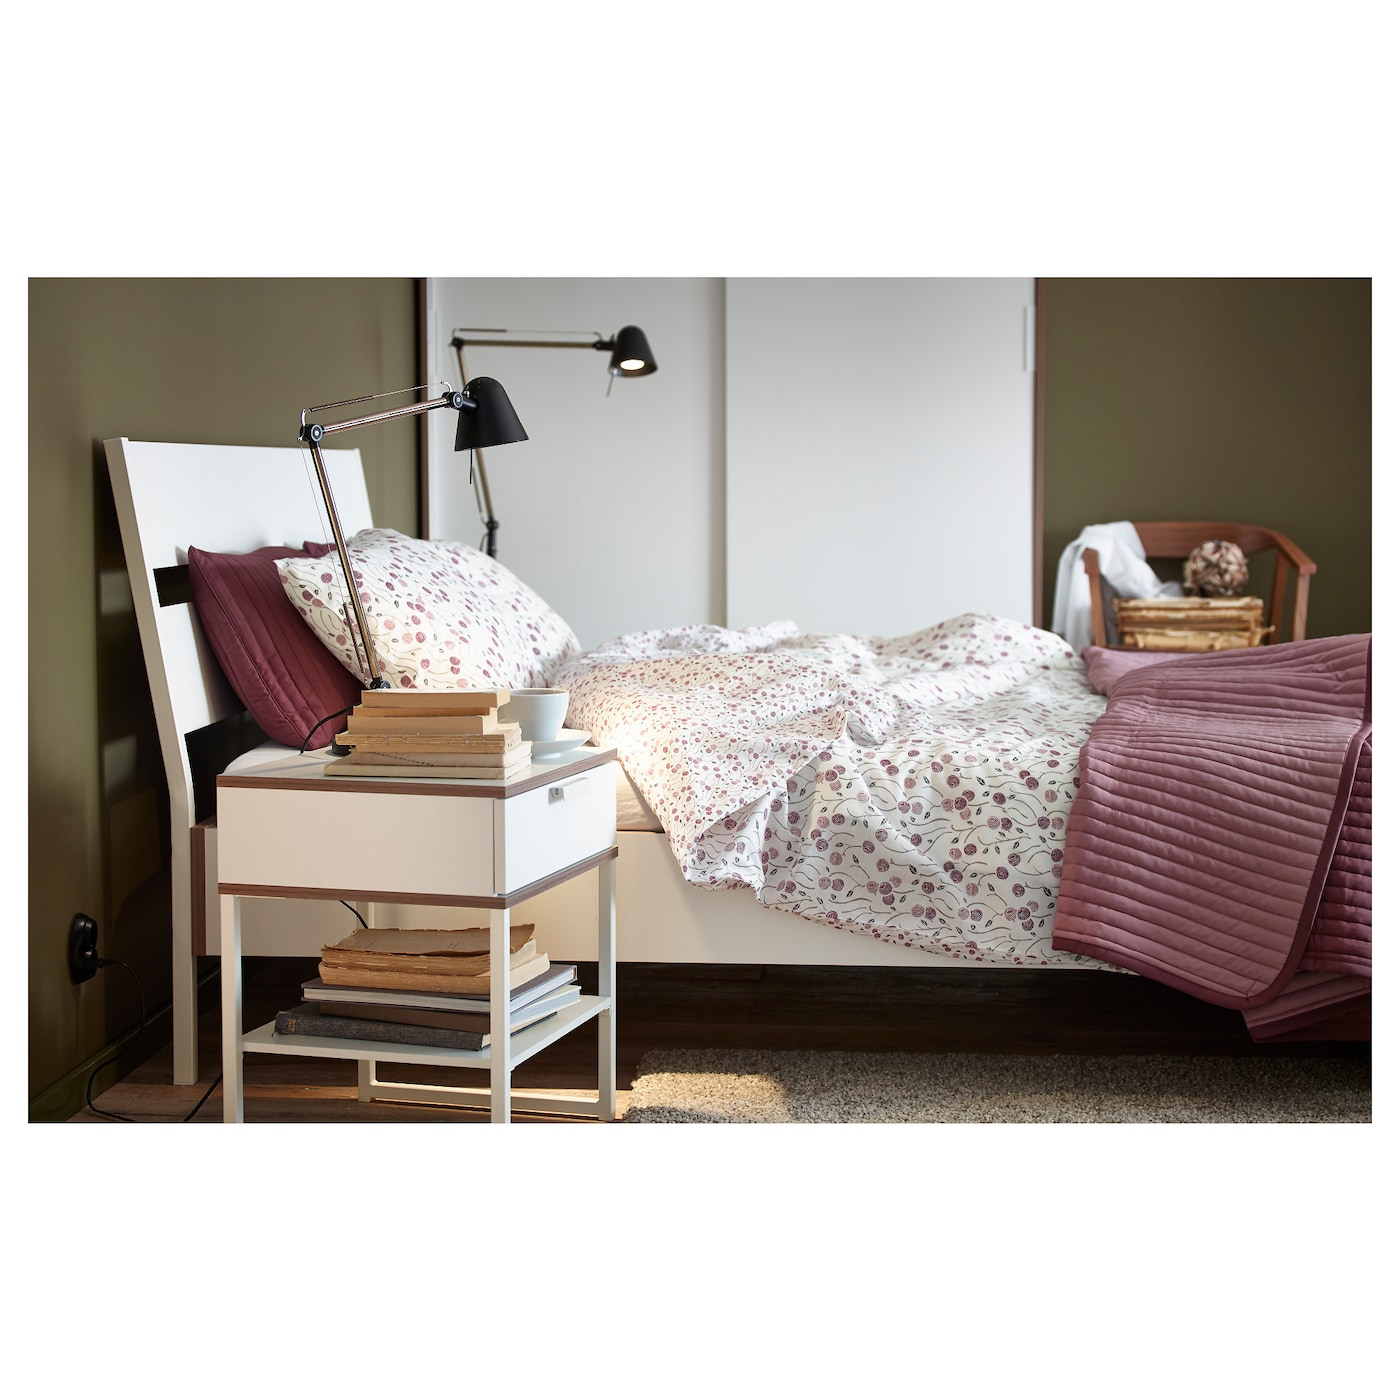 IKEA TRYSIL bed frame The angled headboard allows you to sit comfortably when reading in bed.